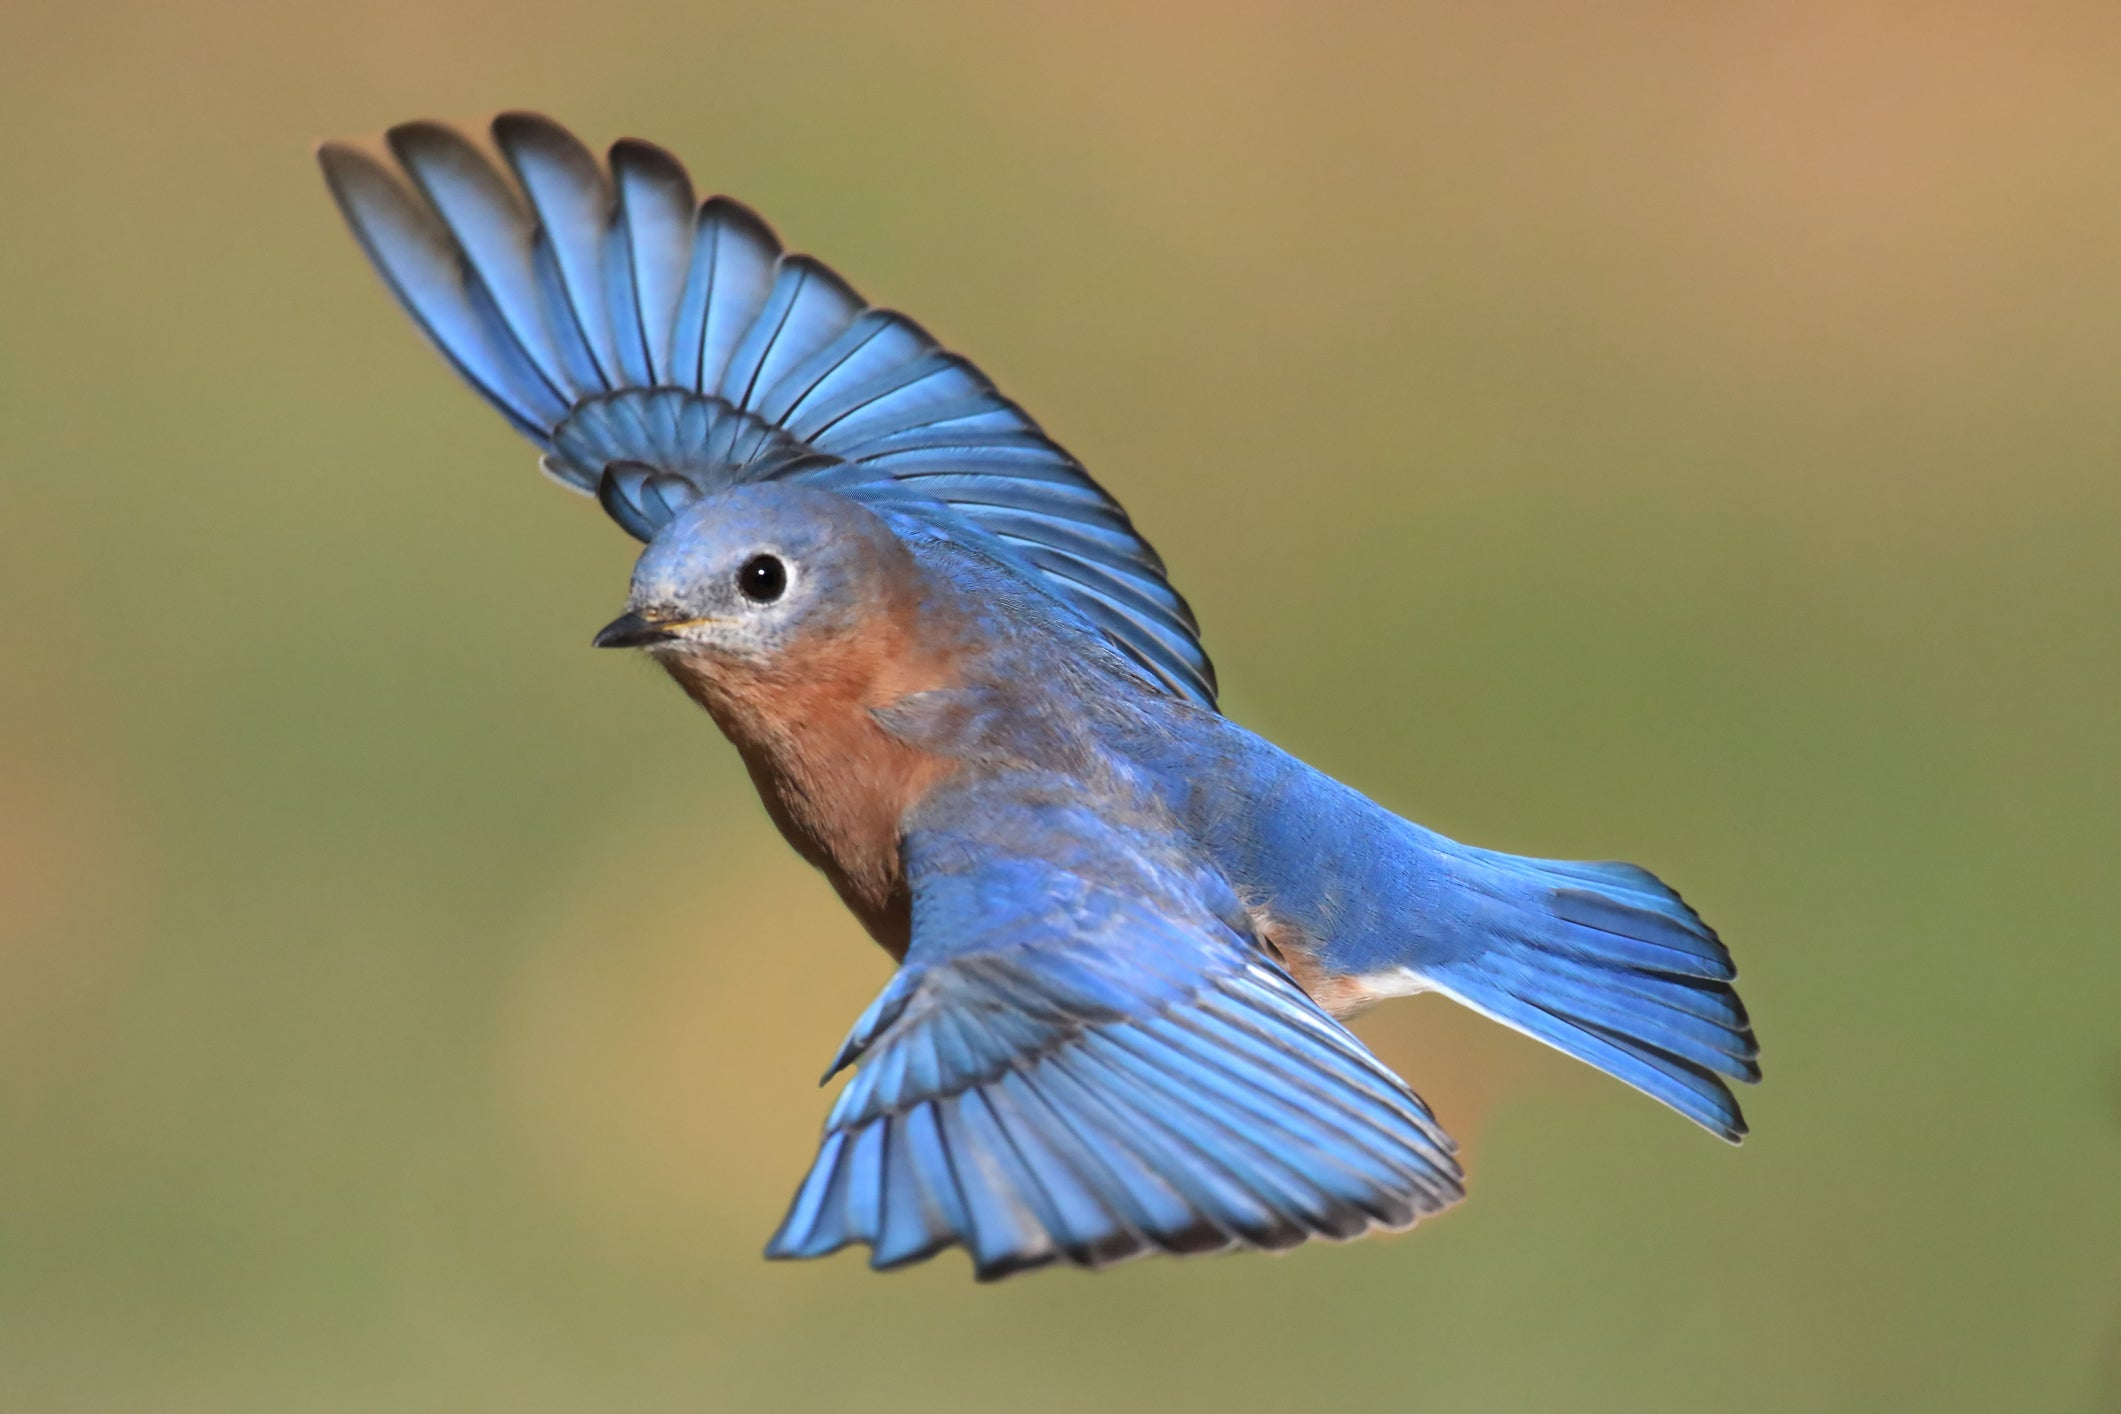 Blue bird - photo#40